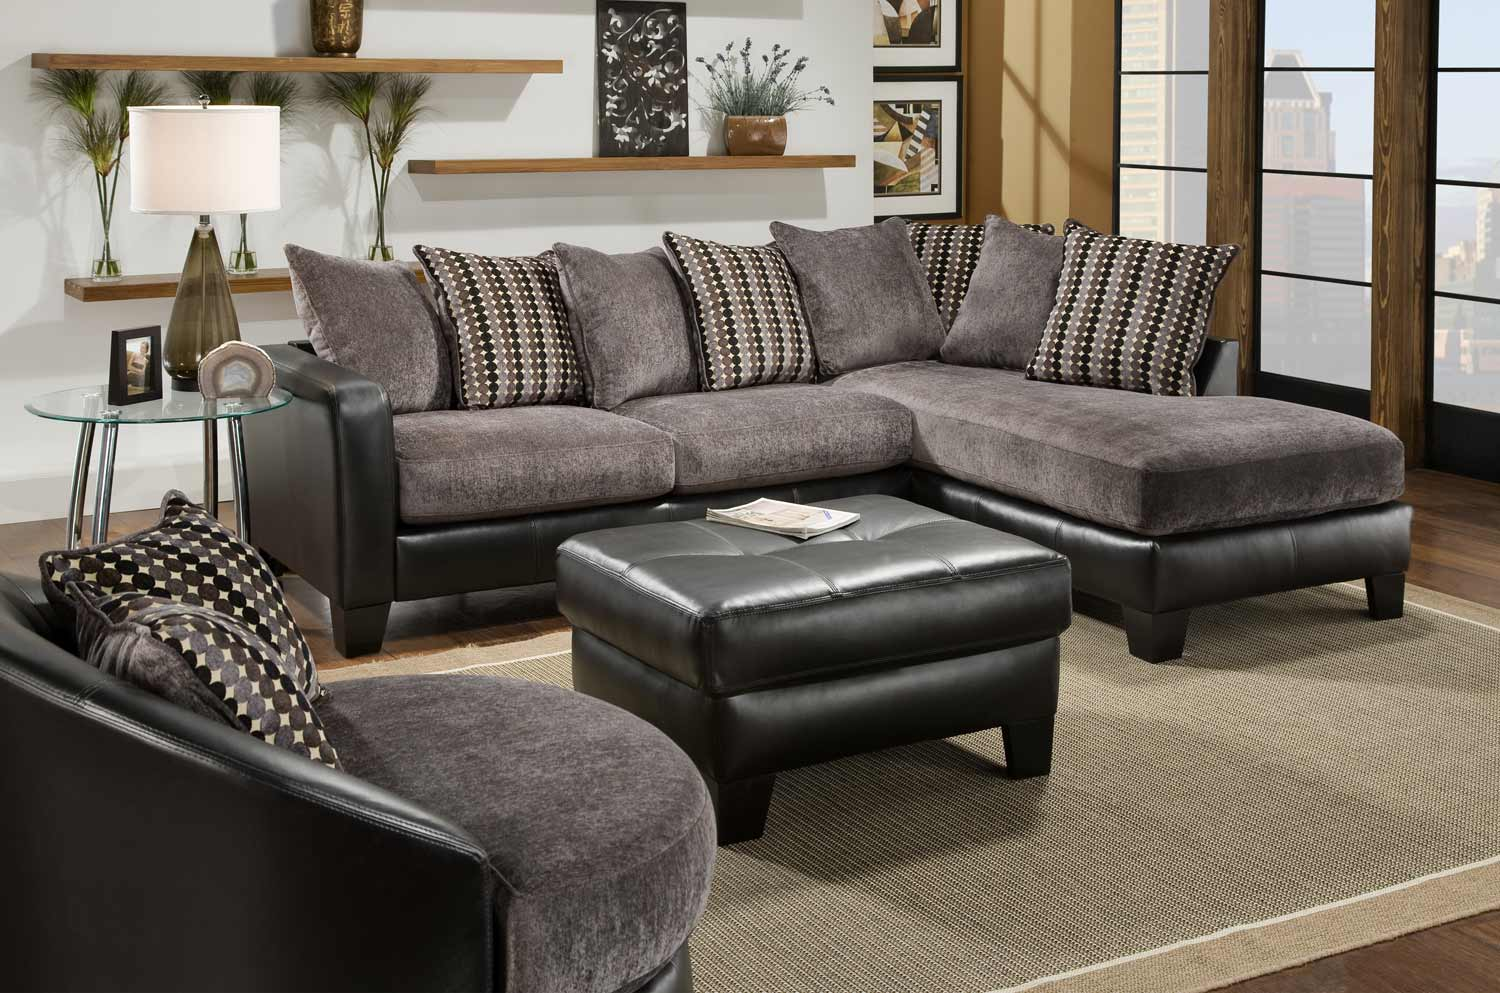 Global Furniture USA 3600 Sectional Sofa Set - Grey Fabric with Black Bicast : usa sectionals - Sectionals, Sofas & Couches